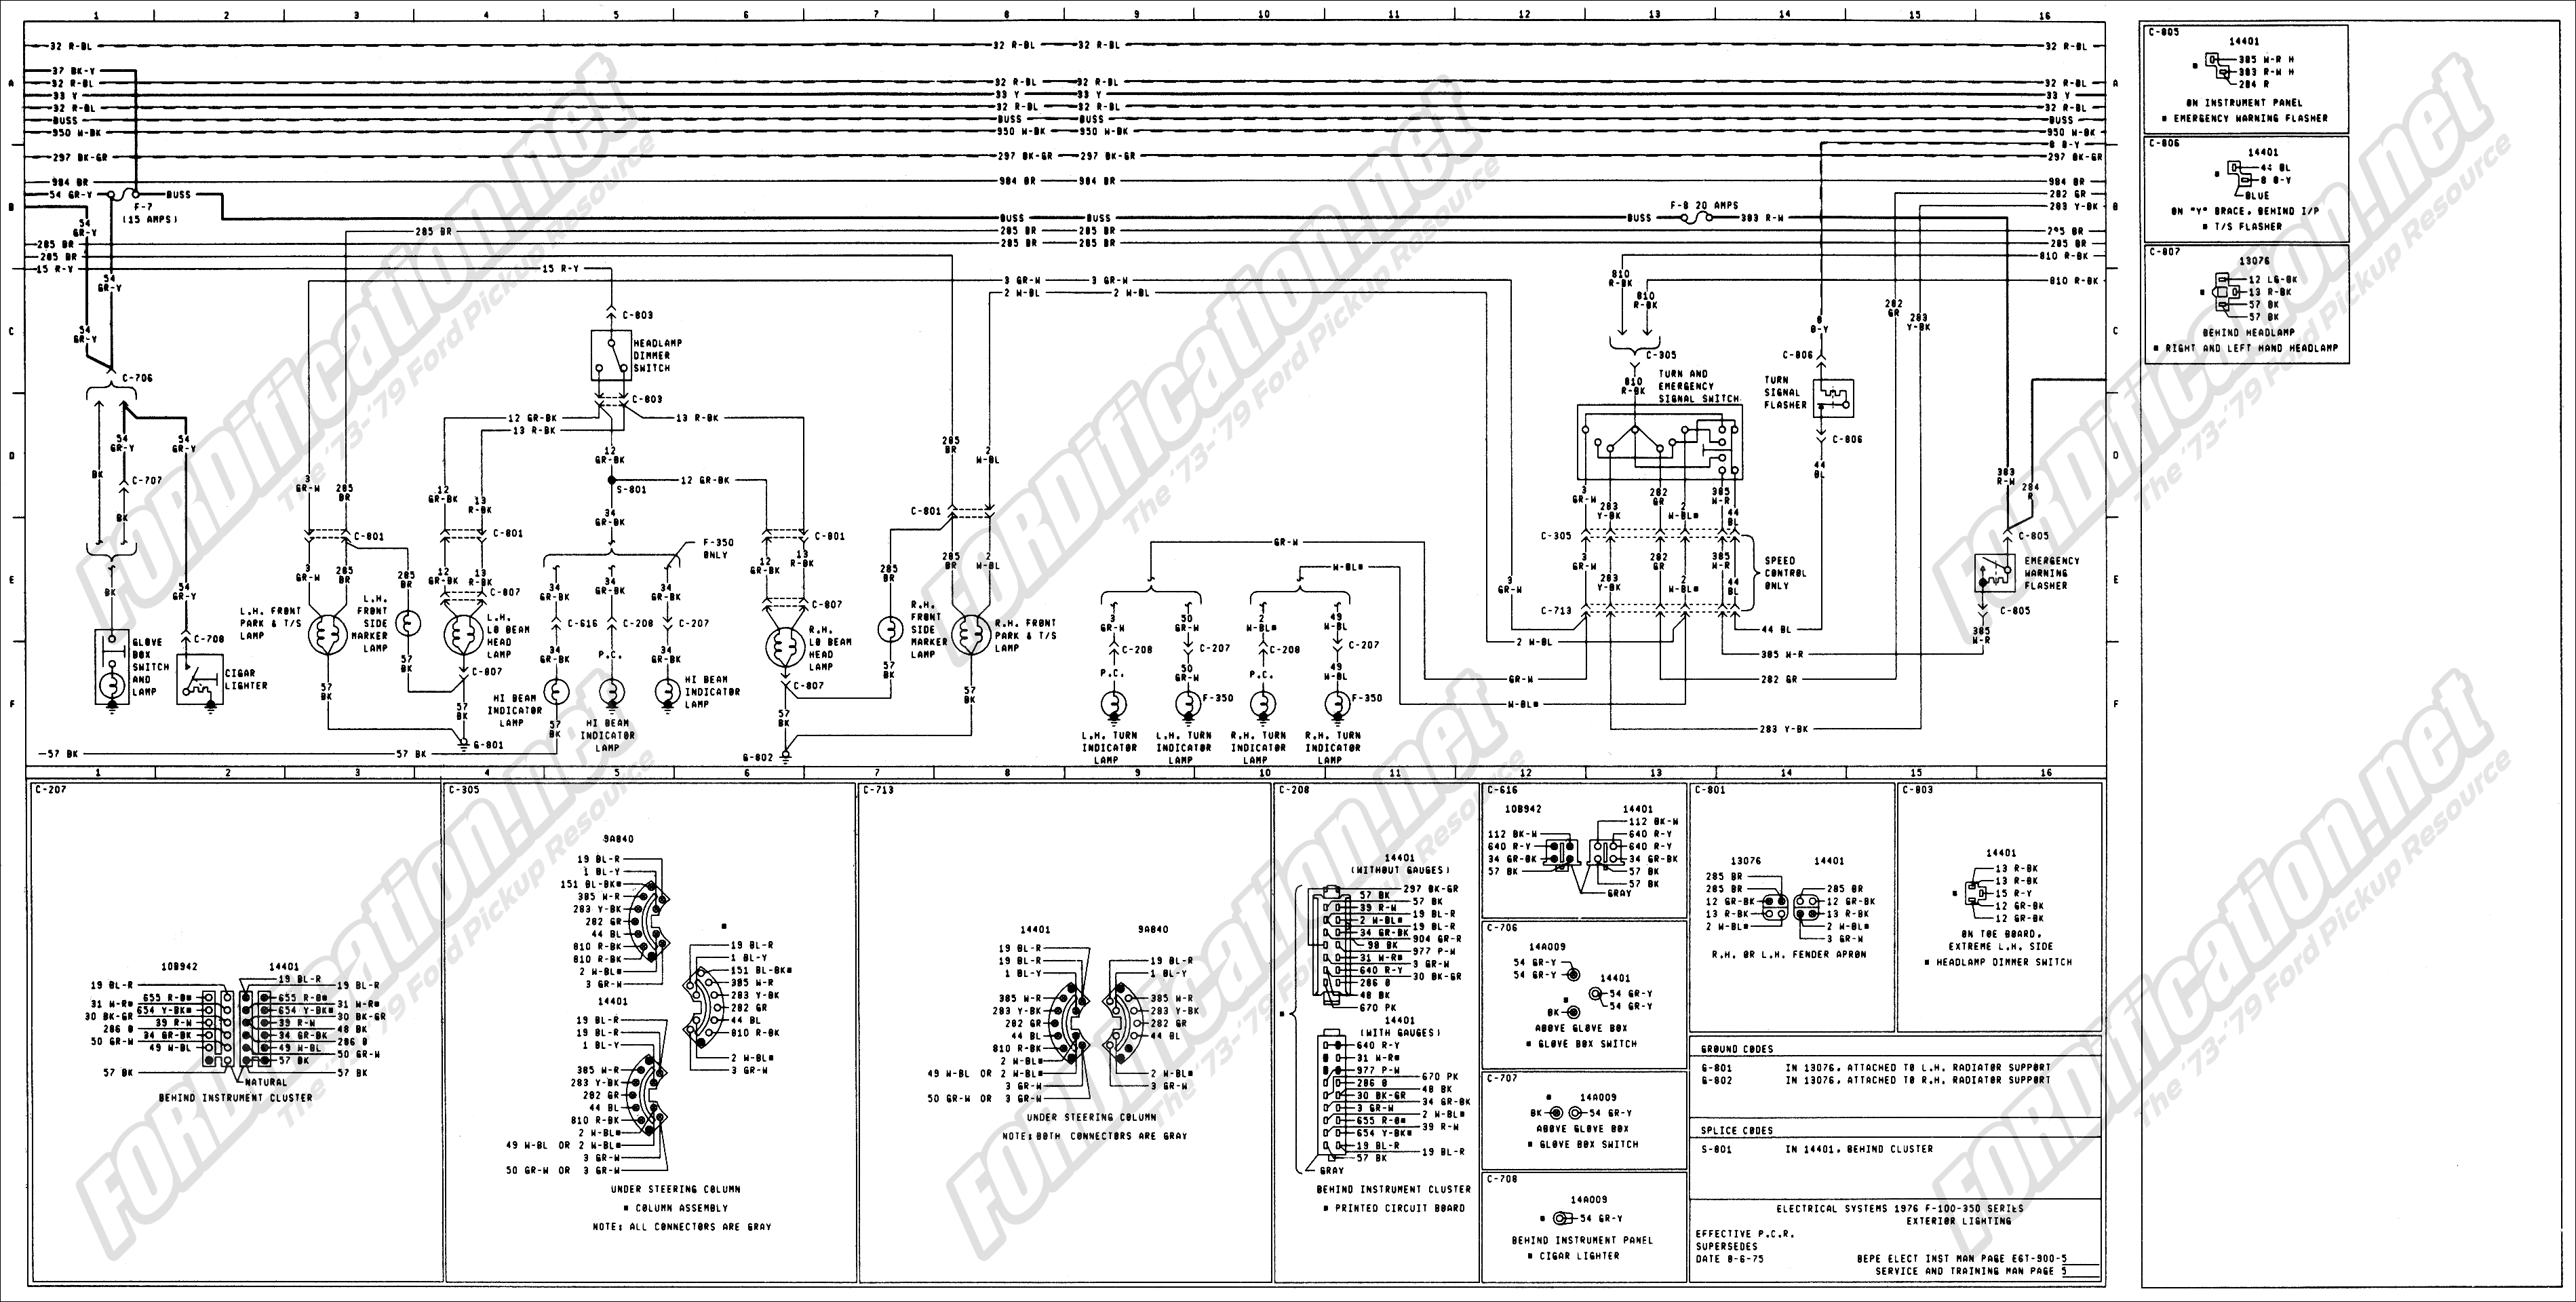 wiring_76master_5of9 1973 1979 ford truck wiring diagrams & schematics fordification net wiring diagram for ford f150 2004 radio at alyssarenee.co